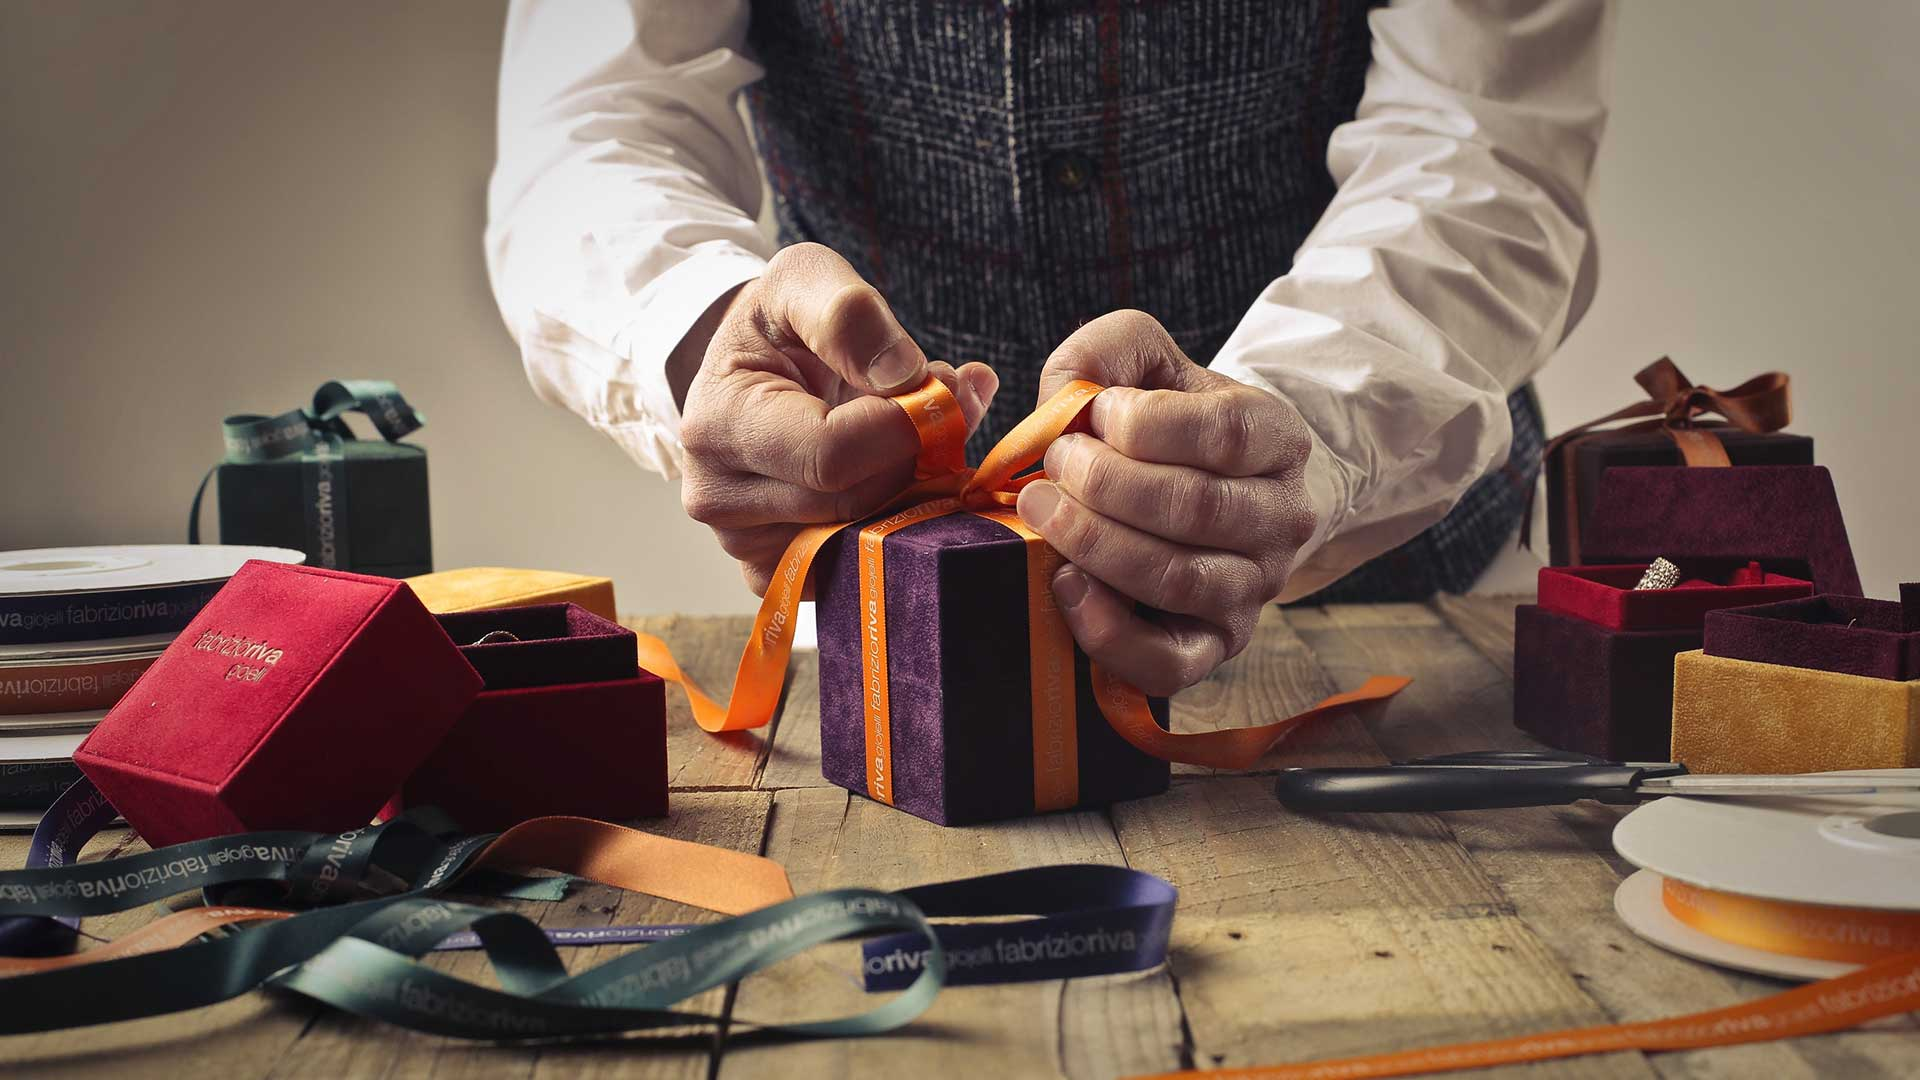 A man wearind a knitted vest and white shirt with long sleeves wraps a small parcel with purple paper and orange ribbon.